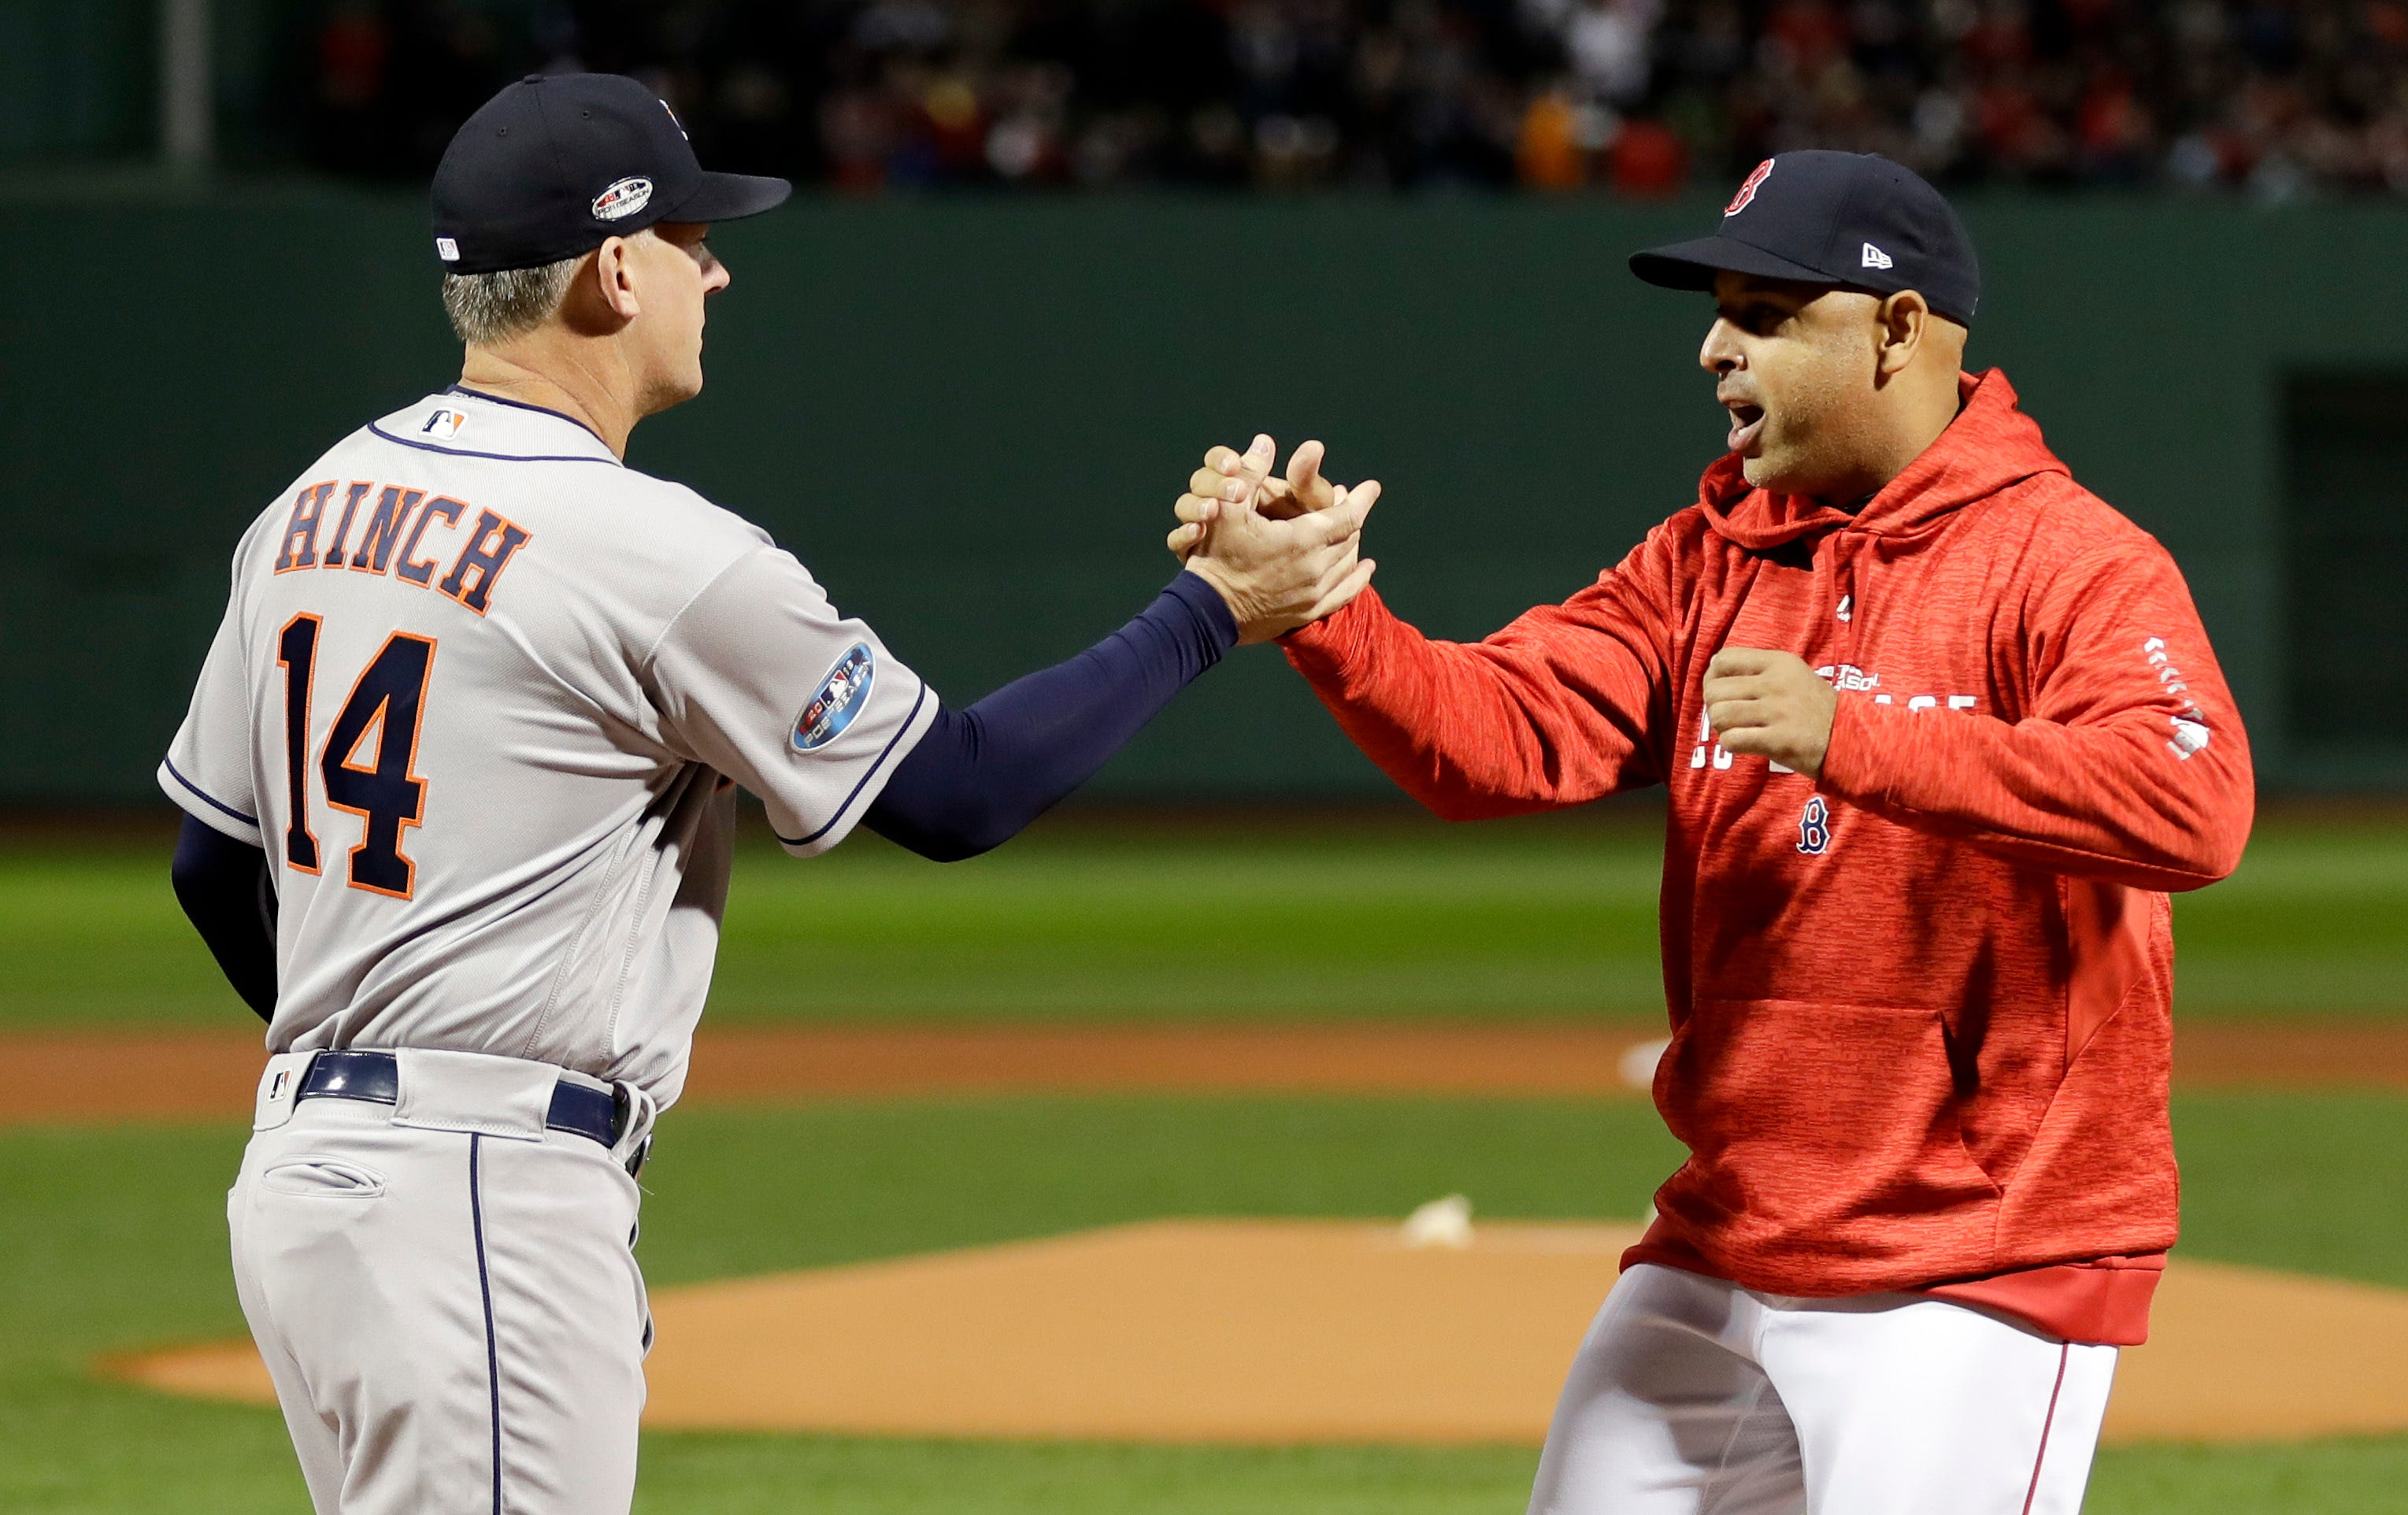 Tigers considering A.J. Hinch and Alex Cora, both suspended after cheating scandal